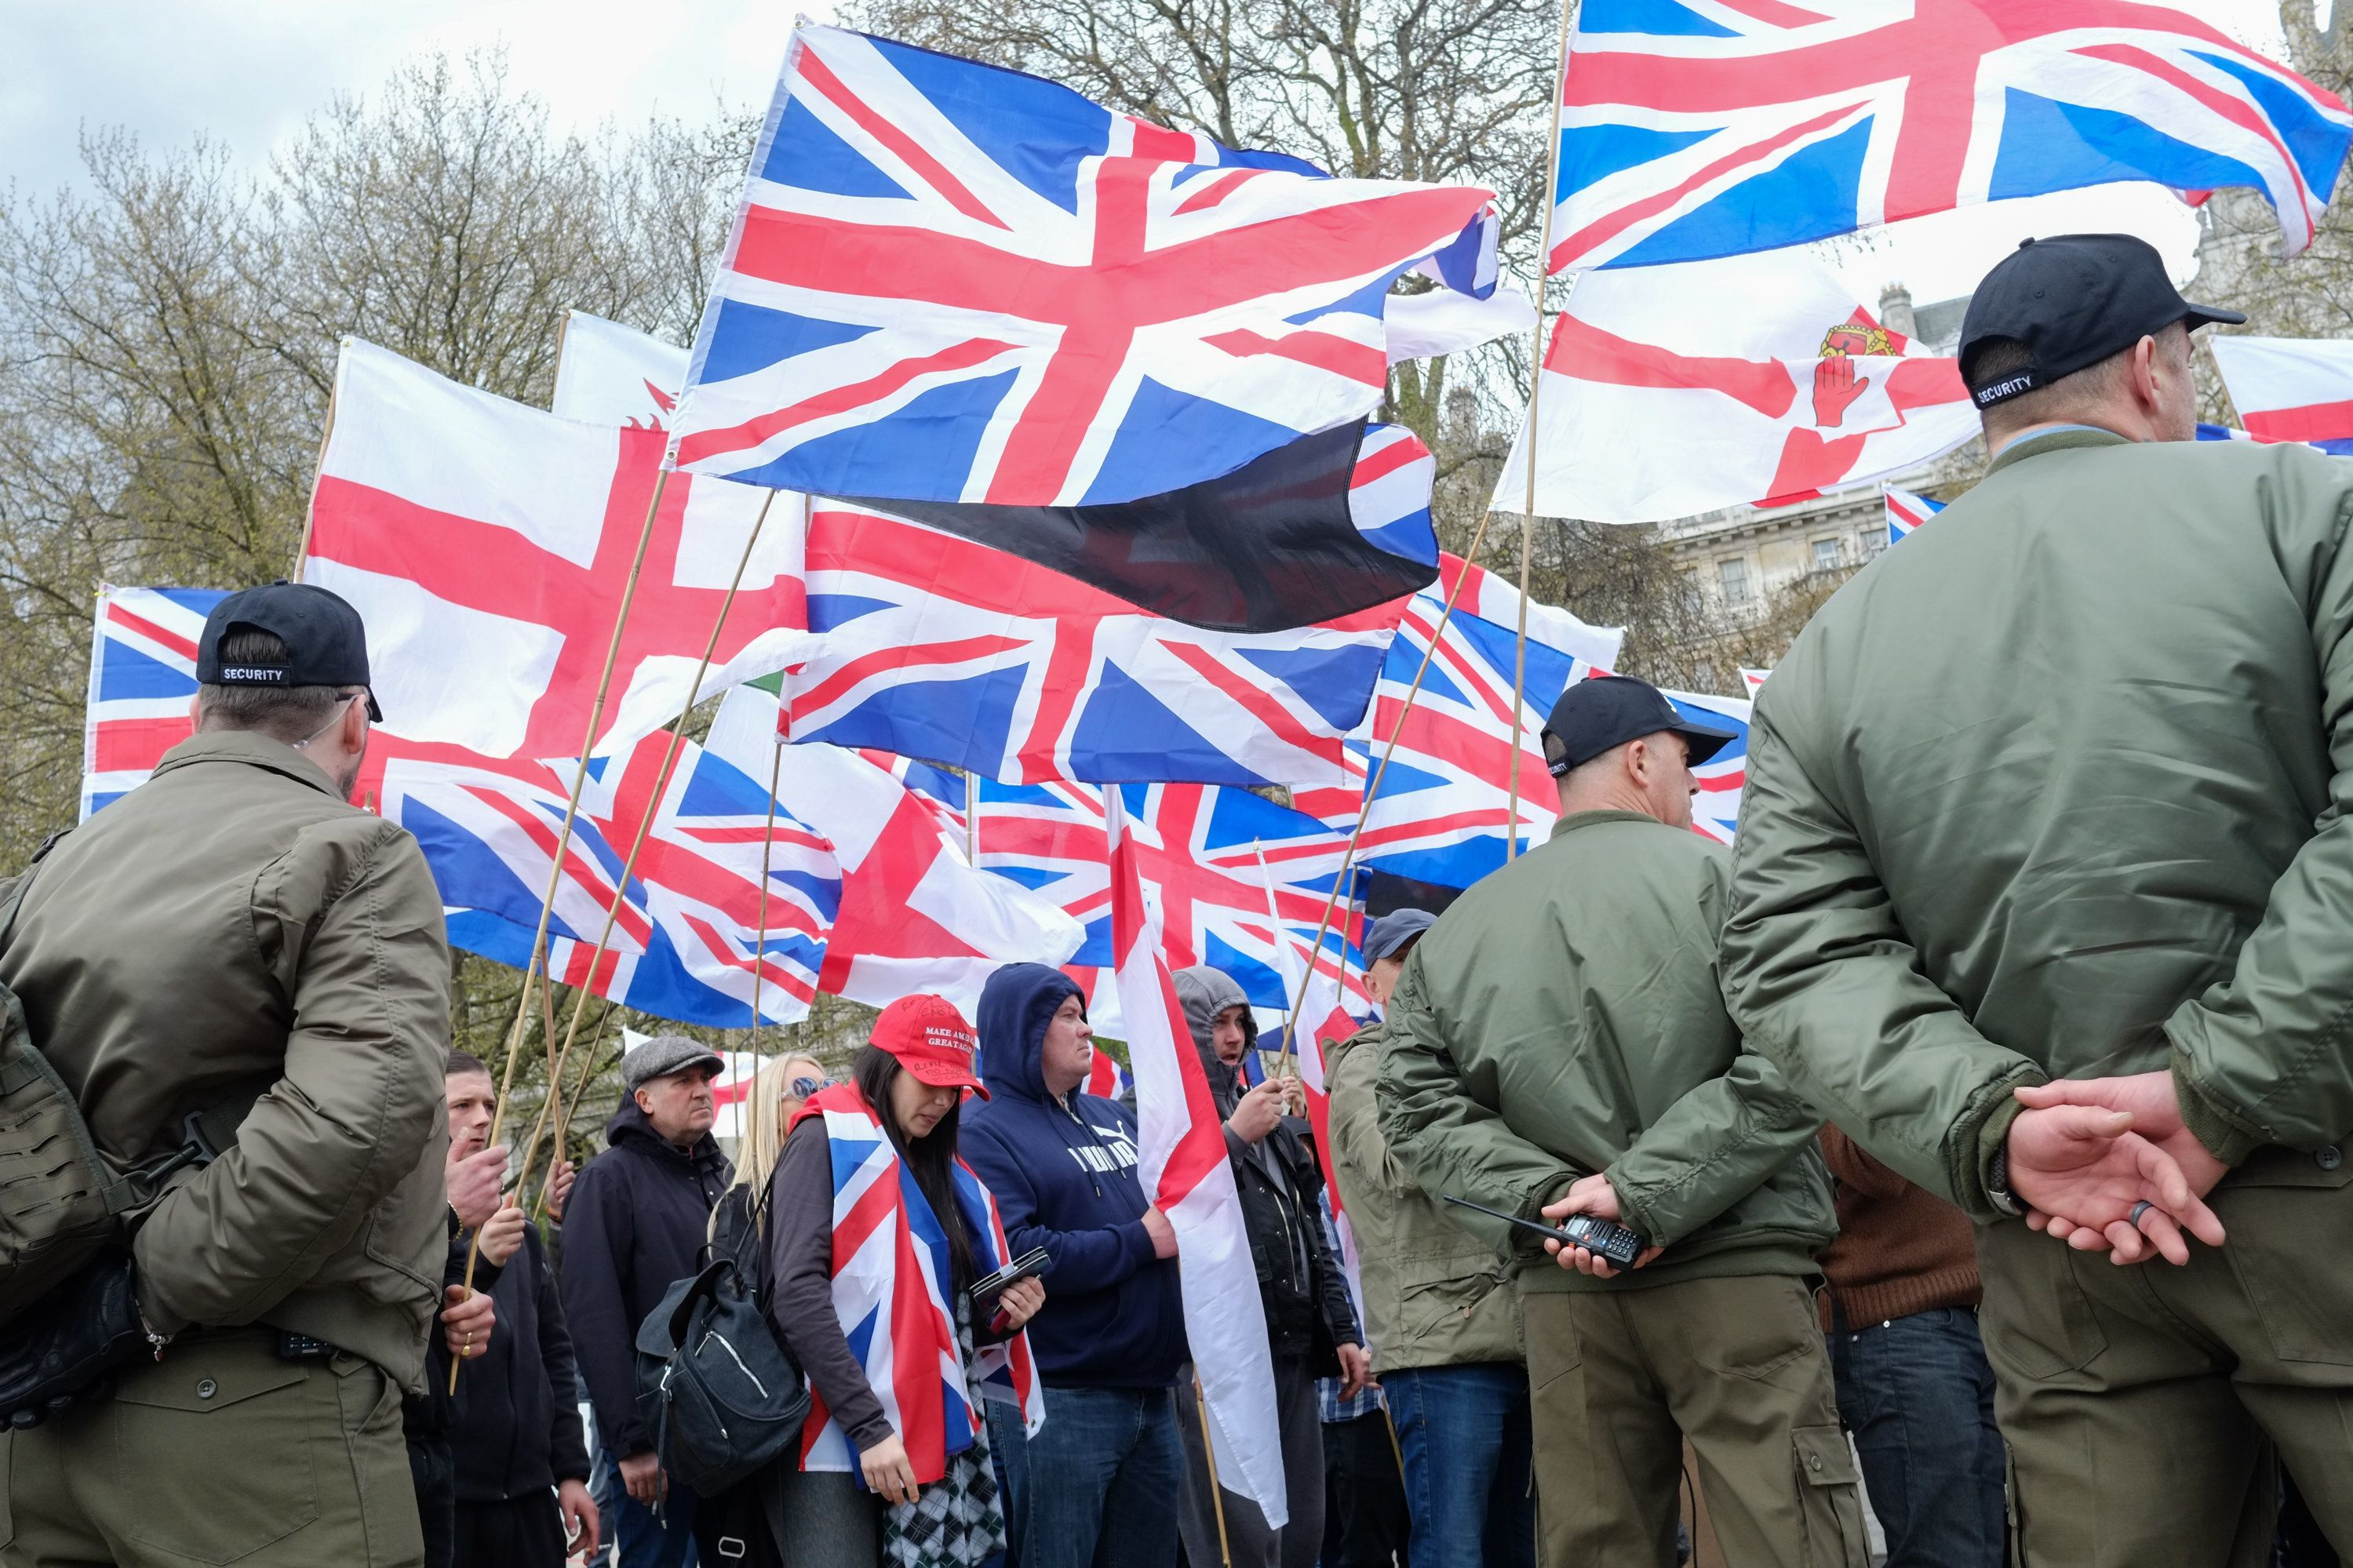 The far-right accounts for a third of all anti-terror referrals, new stats